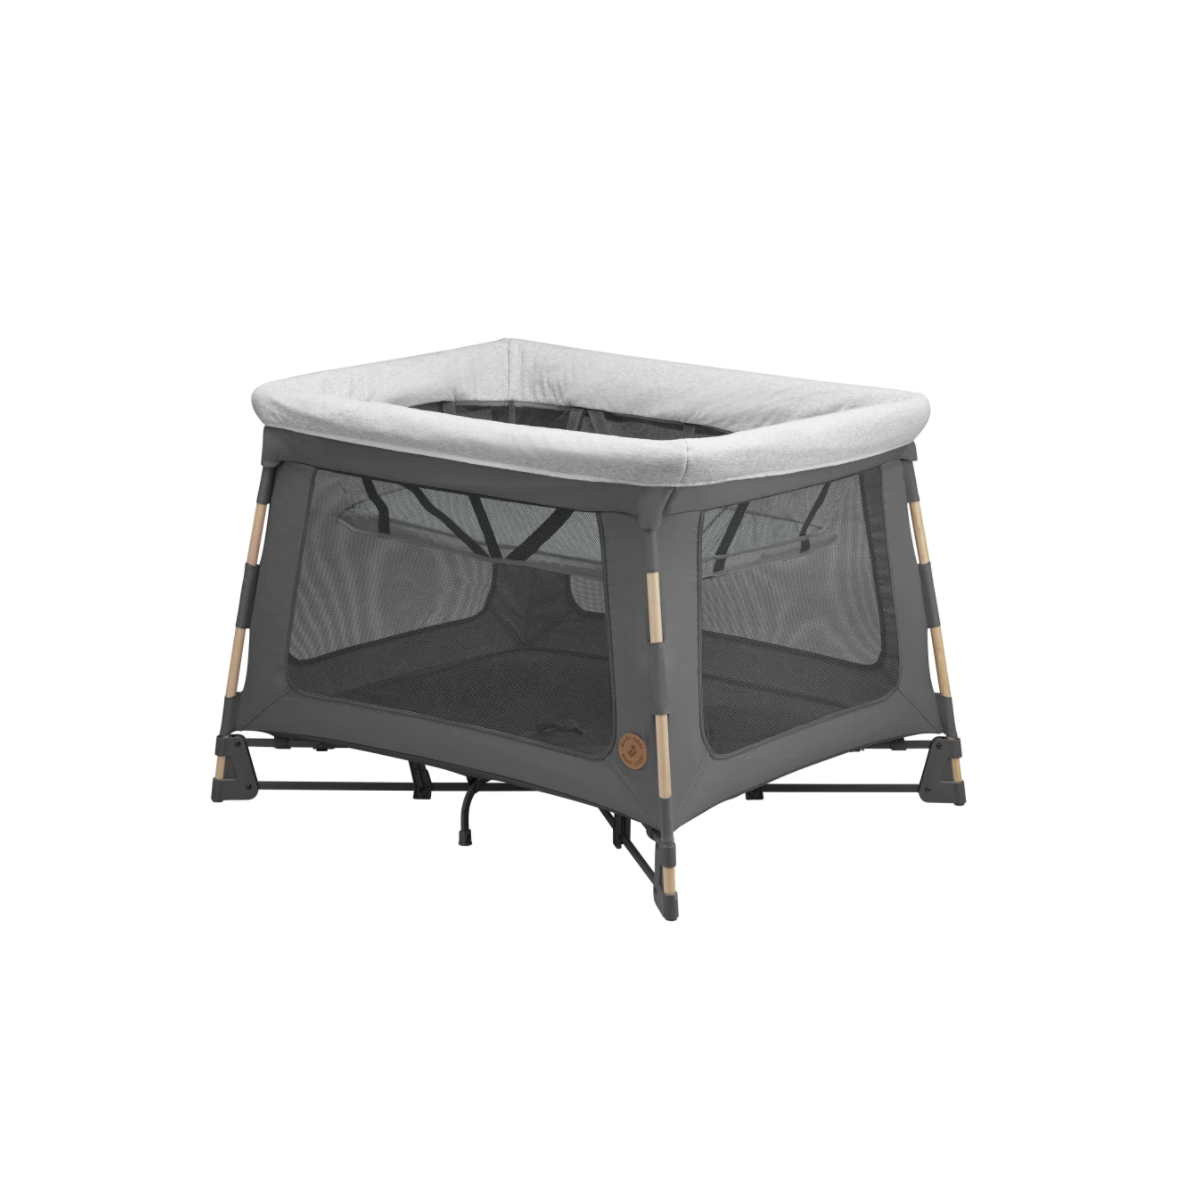 Maxi Cosi Swift 3-in-1 Travel Cot-Beyond Graphite (NEW 2021)